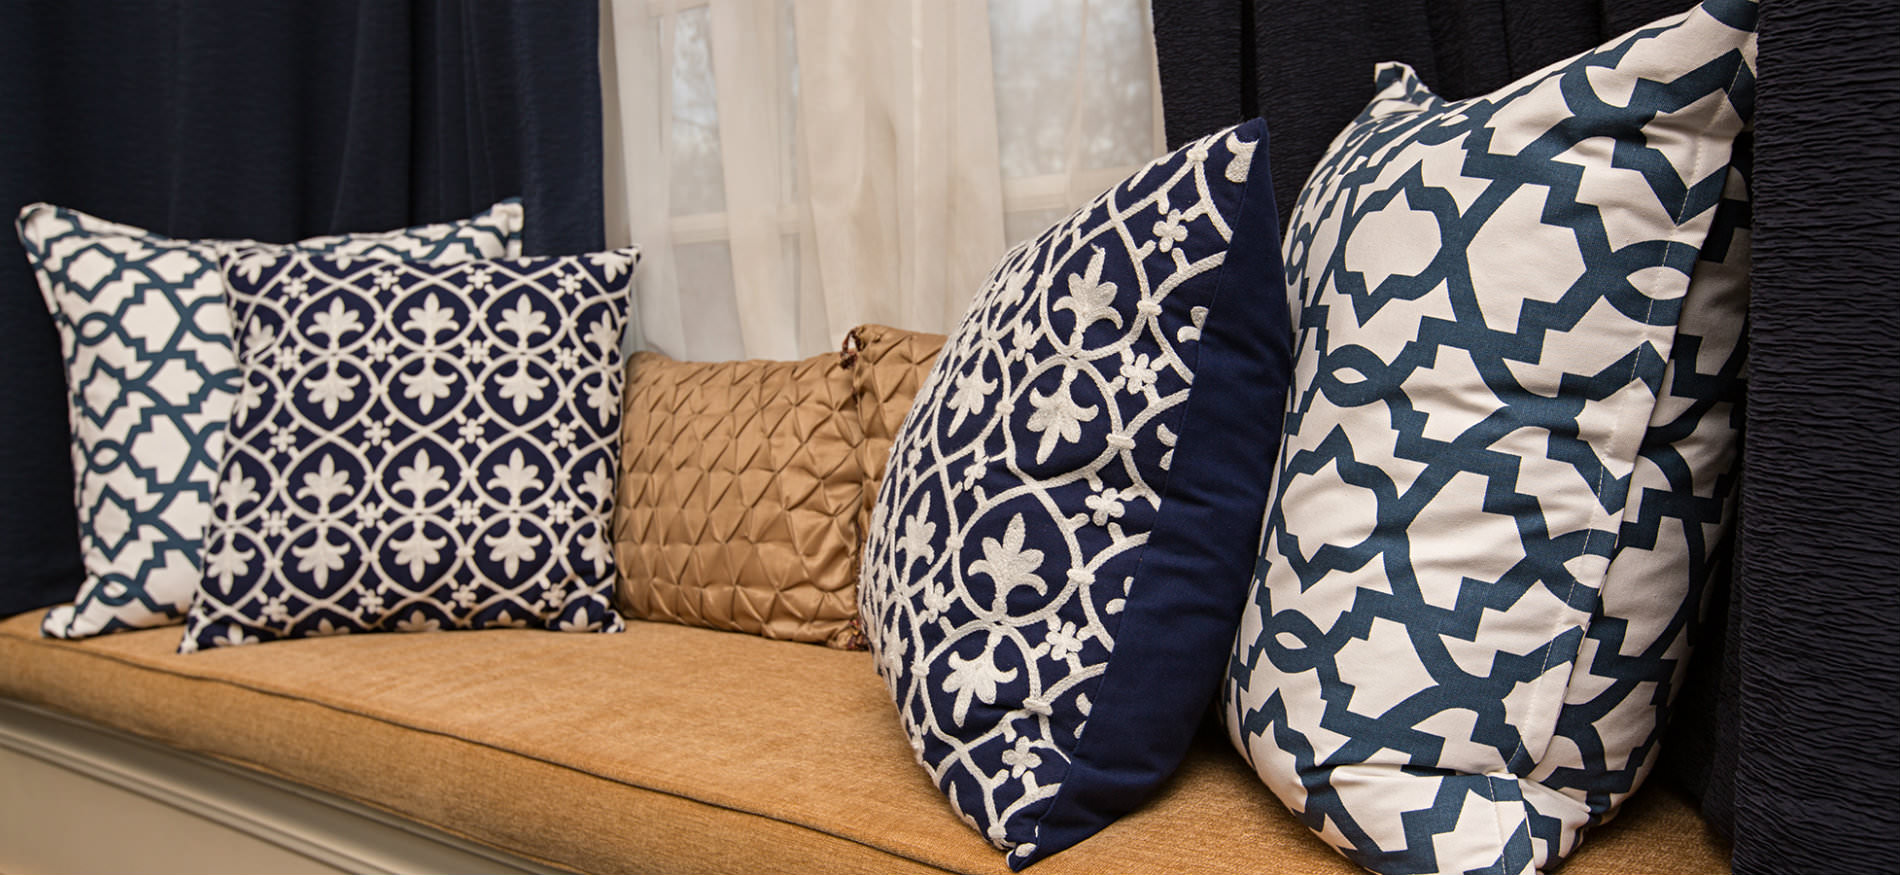 Window seat with a gold cushion and pillow and four pillows in navy and white with white sheers and navy curtains